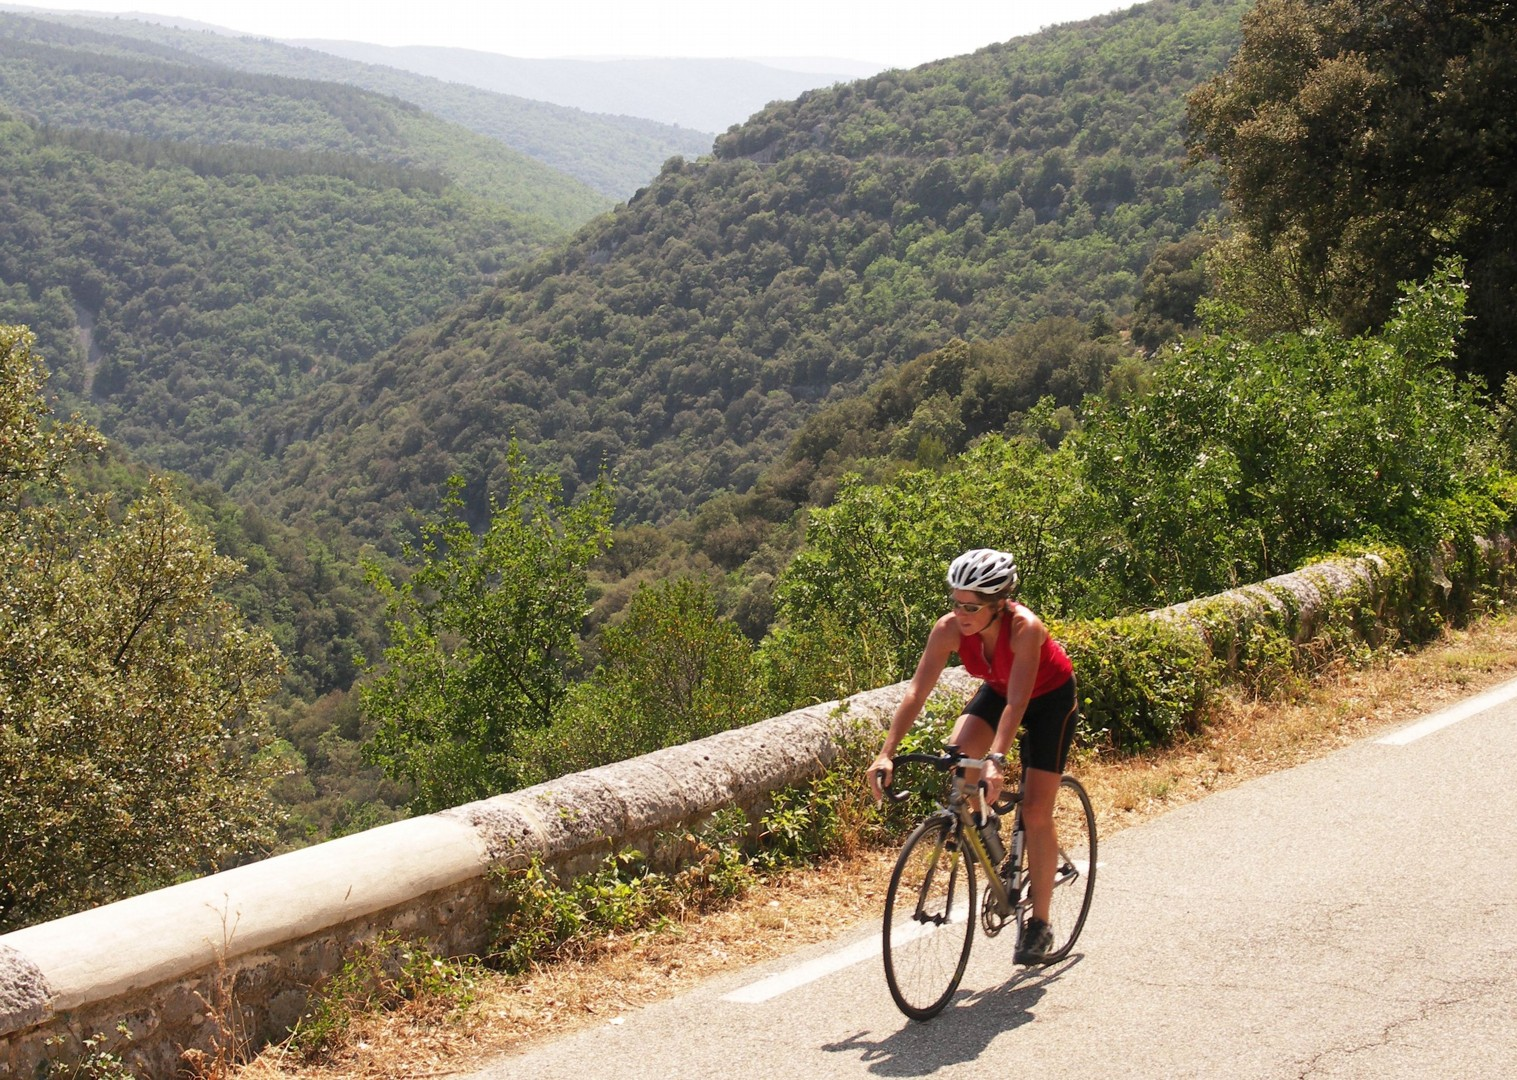 Serrania-de-Ronda-road-cycling-holiday-in-spain-andalucia.jpg - Southern Spain - Andalucia - Los Pueblos Blancos - Self-Guided Road Cycling Holiday - Road Cycling